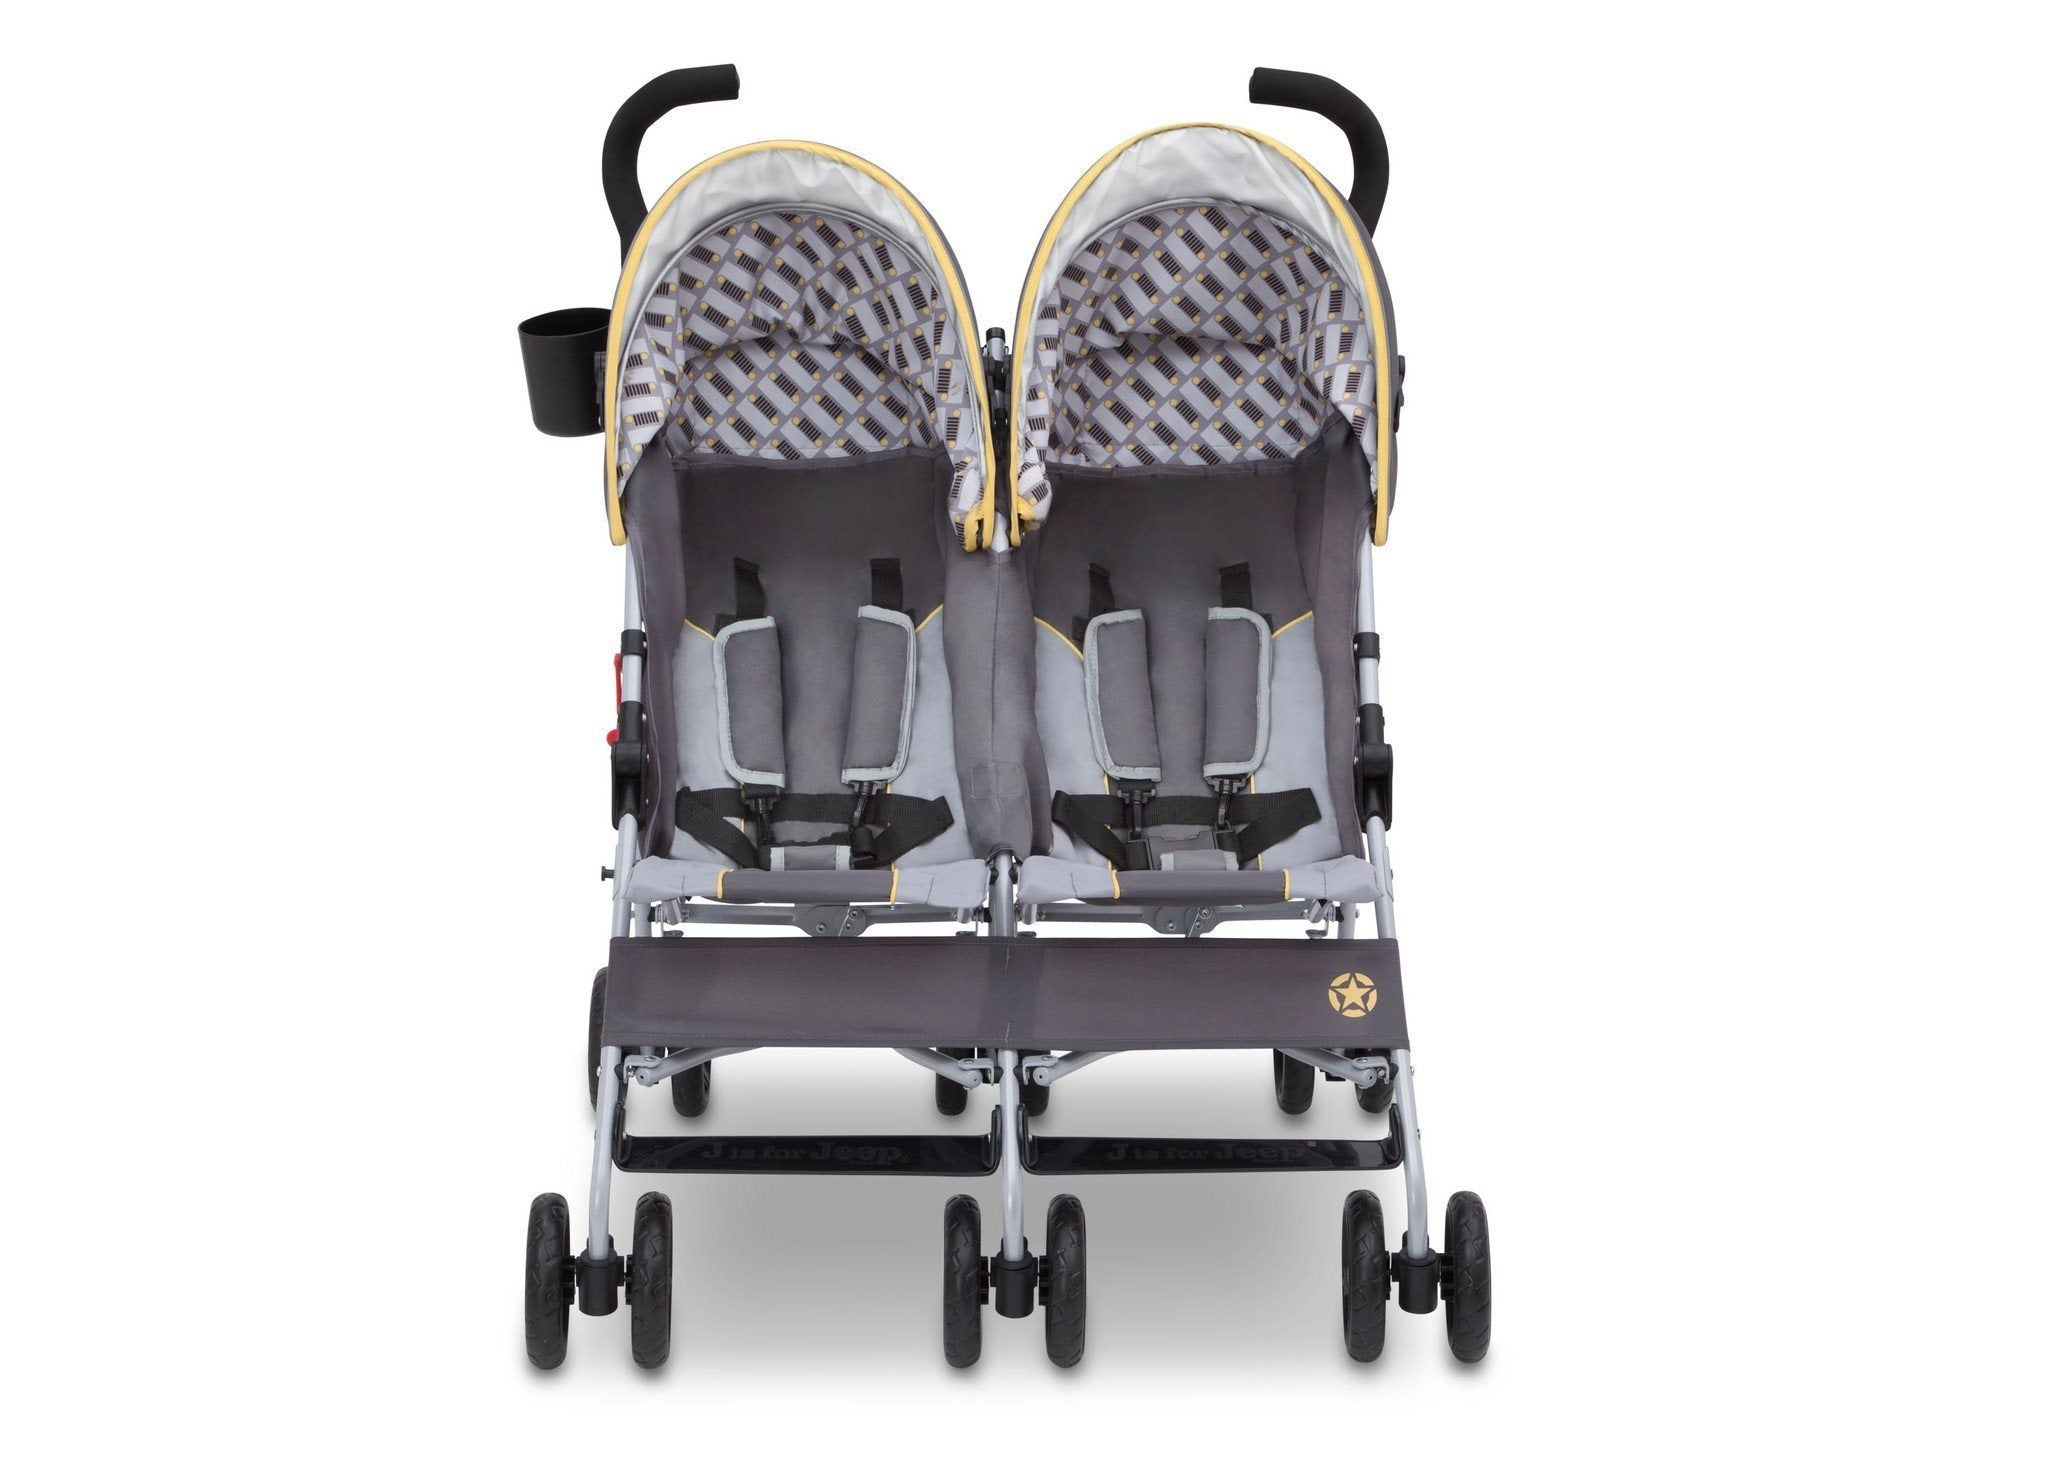 Jeep Brand Scout Double Stroller by Delta Children, Spot On (722), with multi-position reclining seat